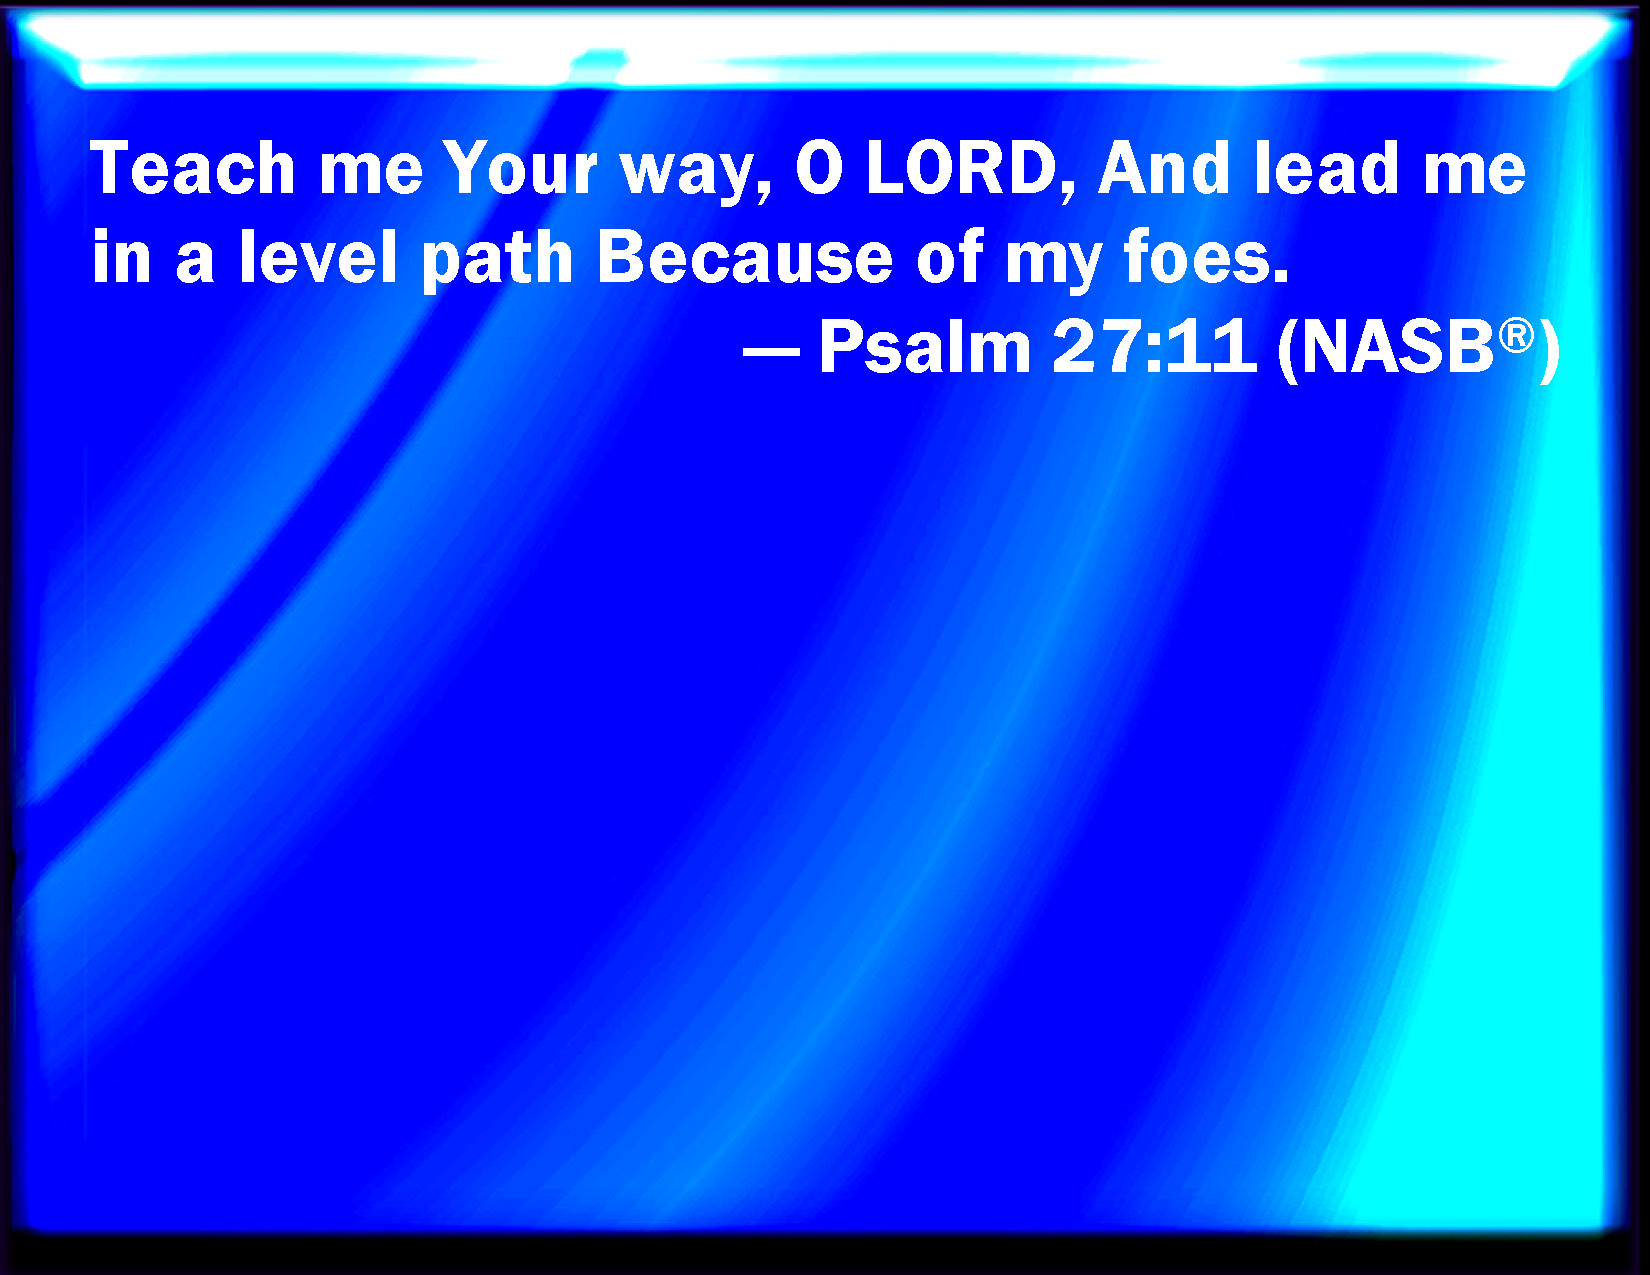 Psalm 27:11 Teach me your way, O LORD, and lead me in a